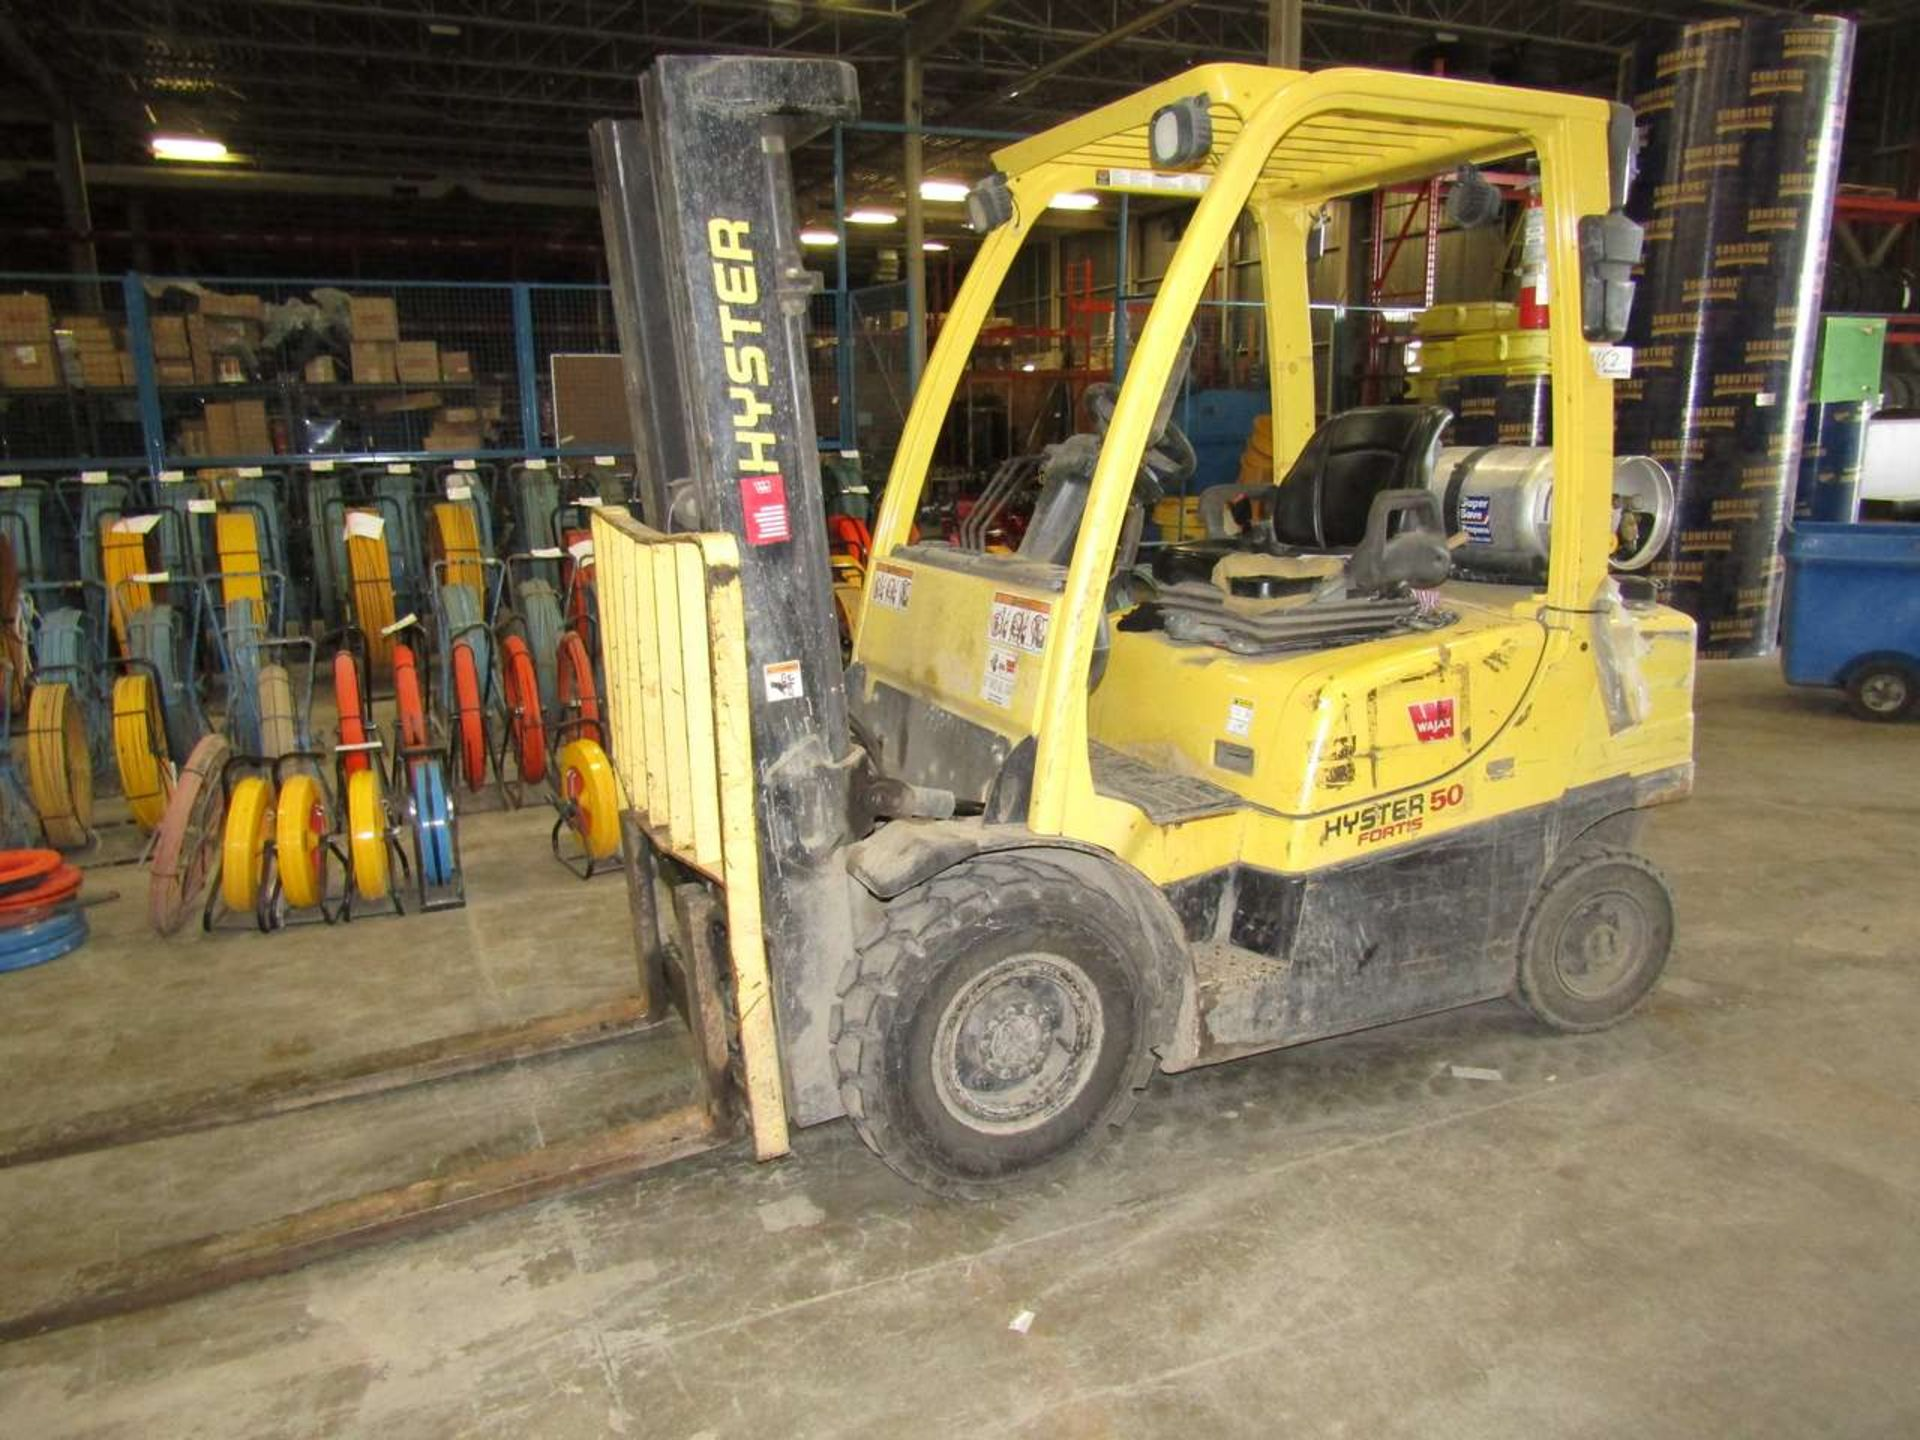 Lot 652 - Hyster H 100FT 2 Ton Forklift 5,569 Hours